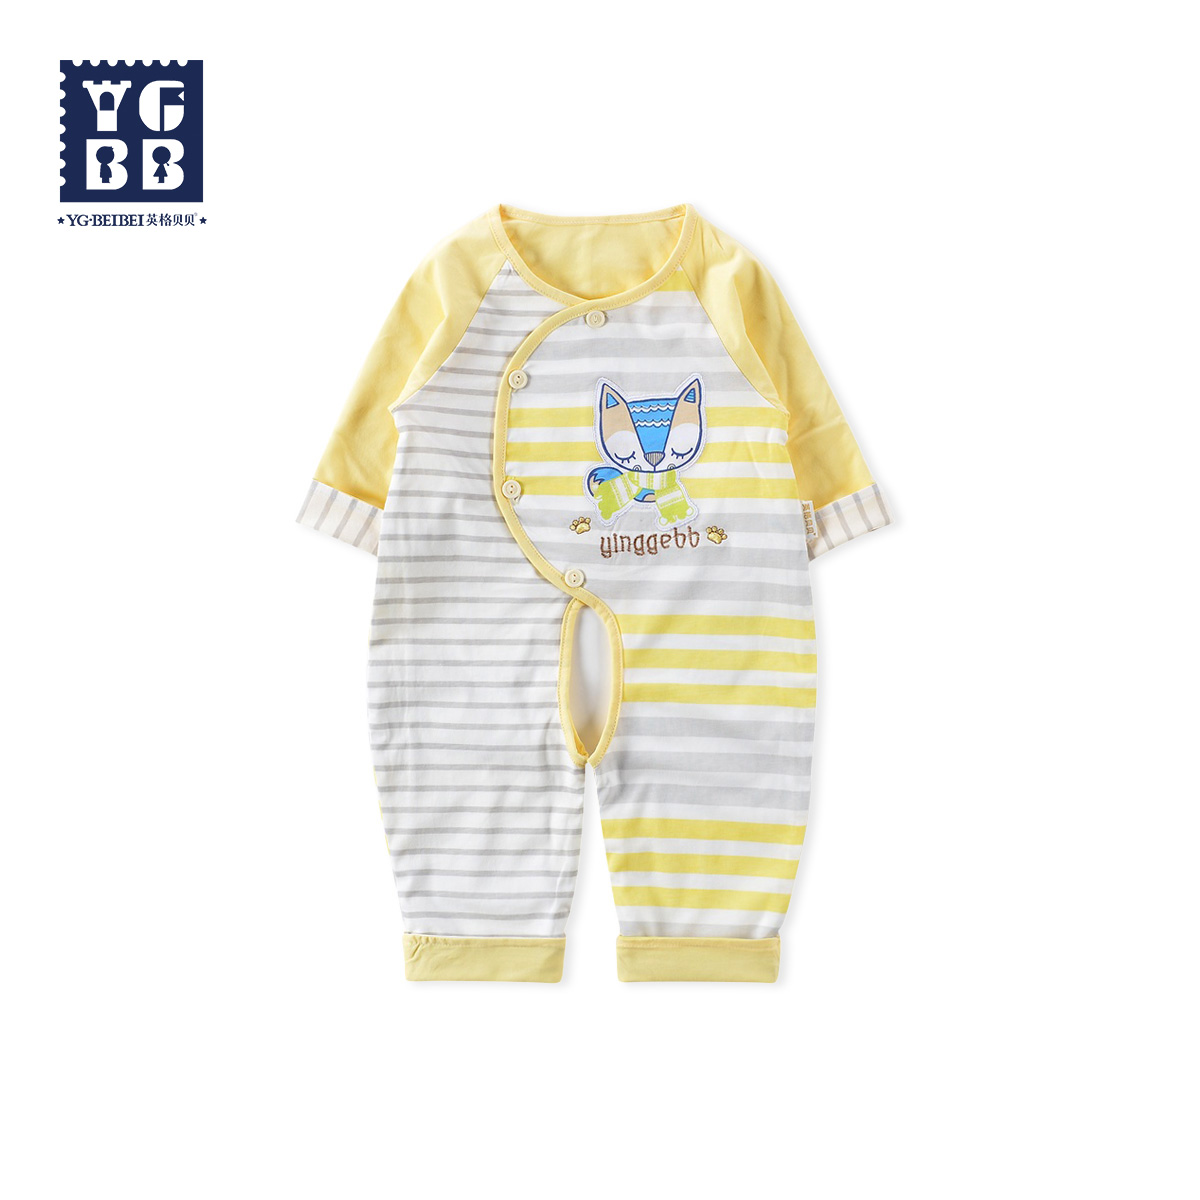 Ying ge beibei 2016 new male baby spring and autumn thin section double romper jumpsuit out clothes infant clothes